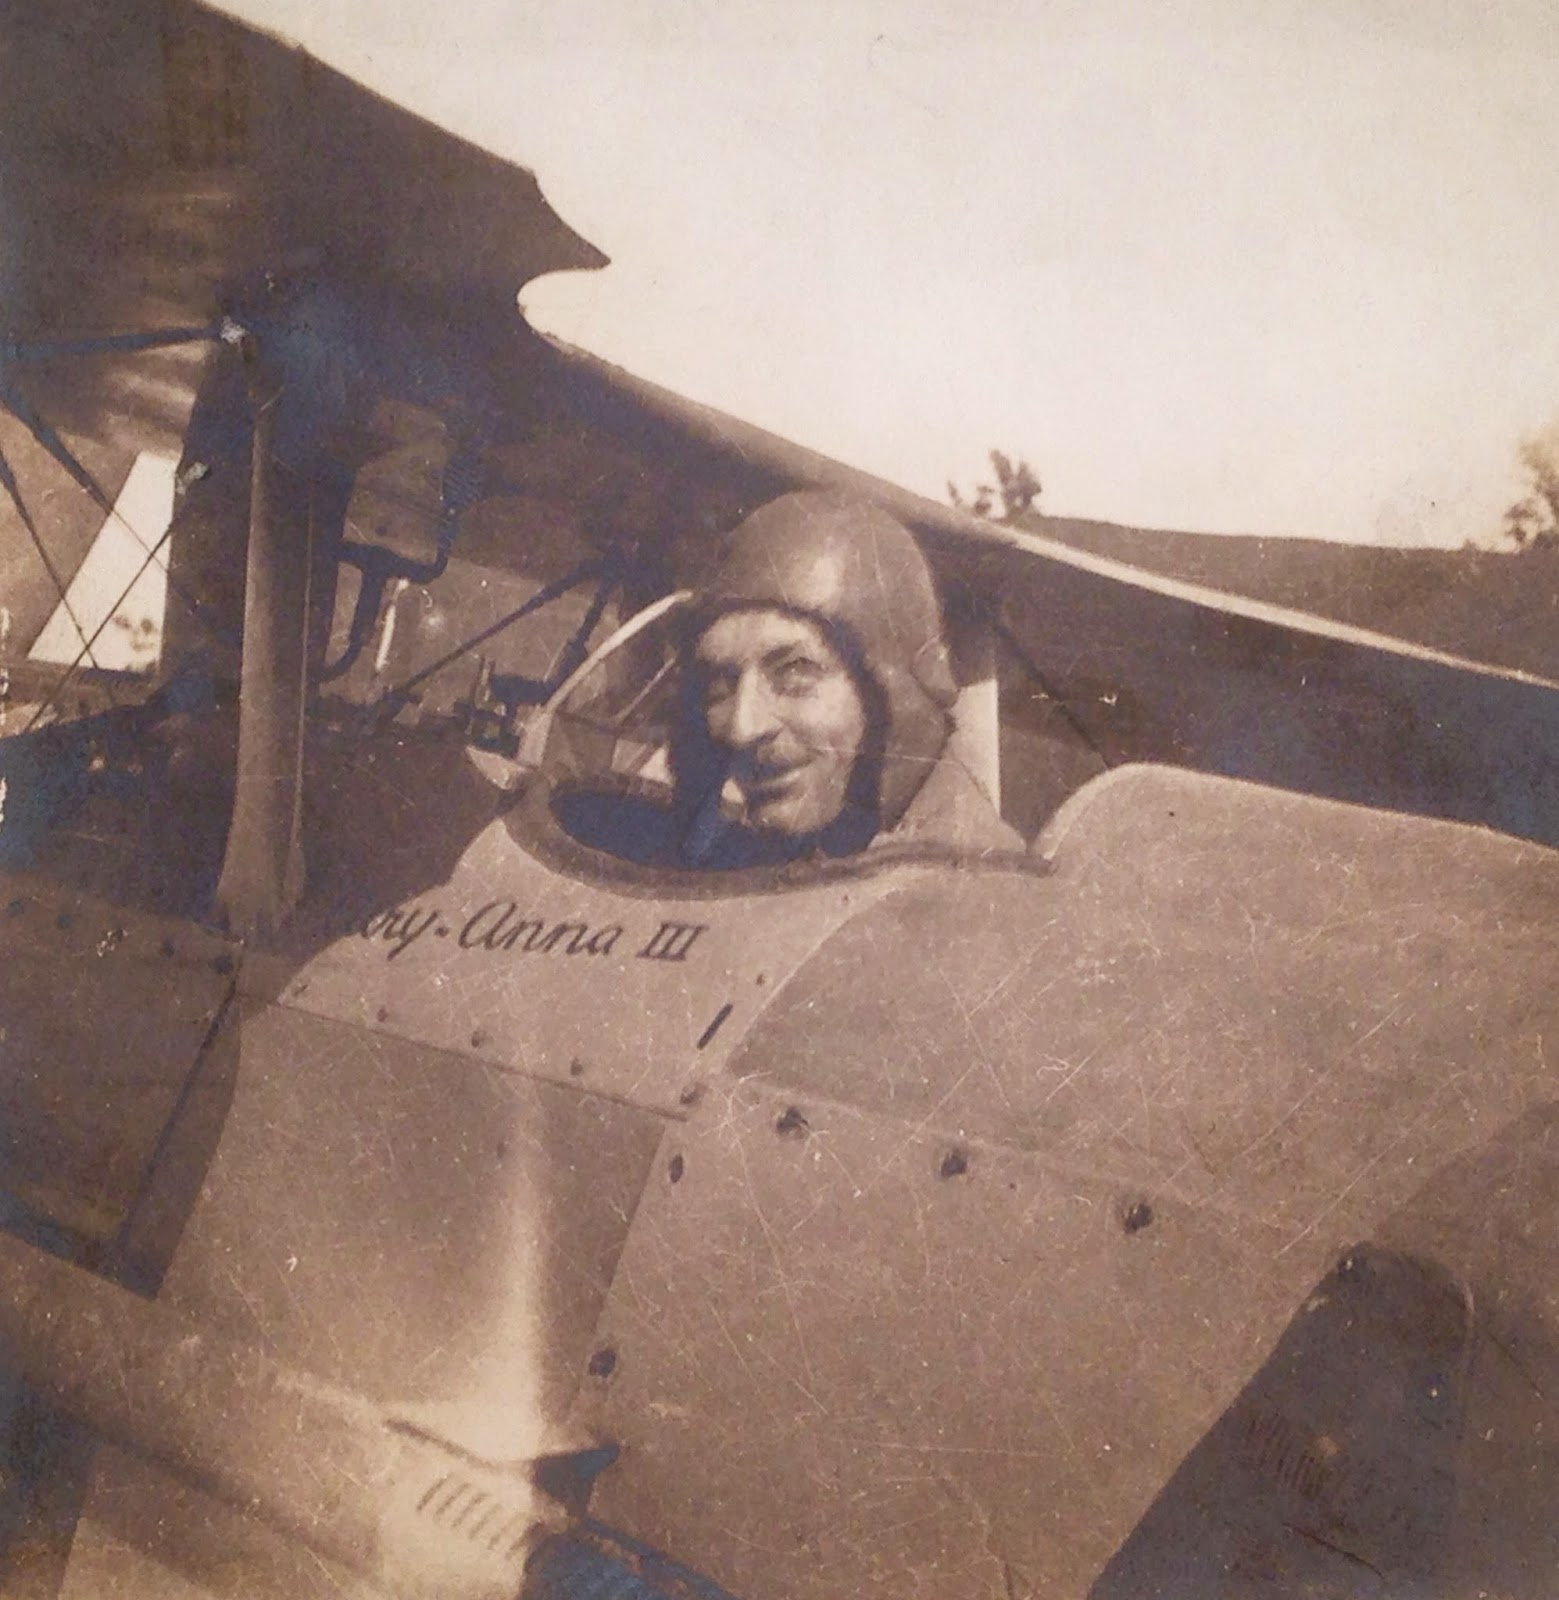 A photograph of a man's head peaking out of a small airplane.